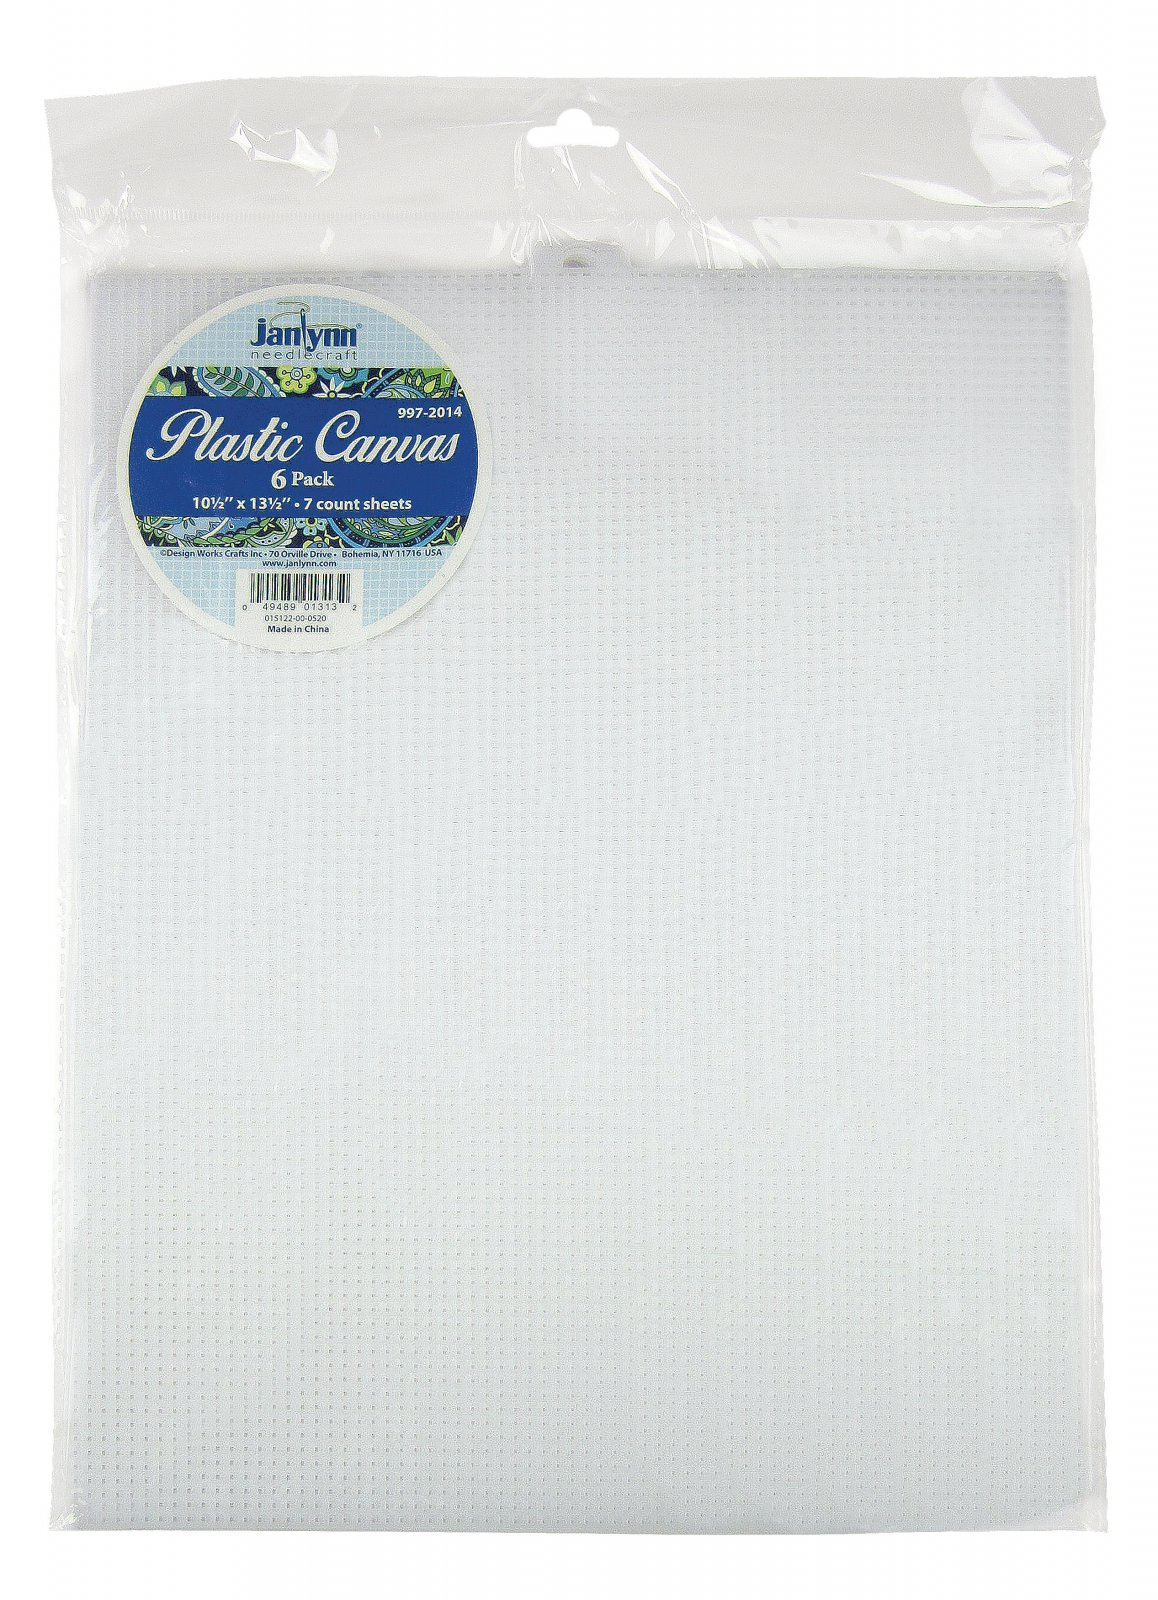 # 997-2014 - 7 Count Plastic Canvas Sheets - CLEAR/PACK OF 6